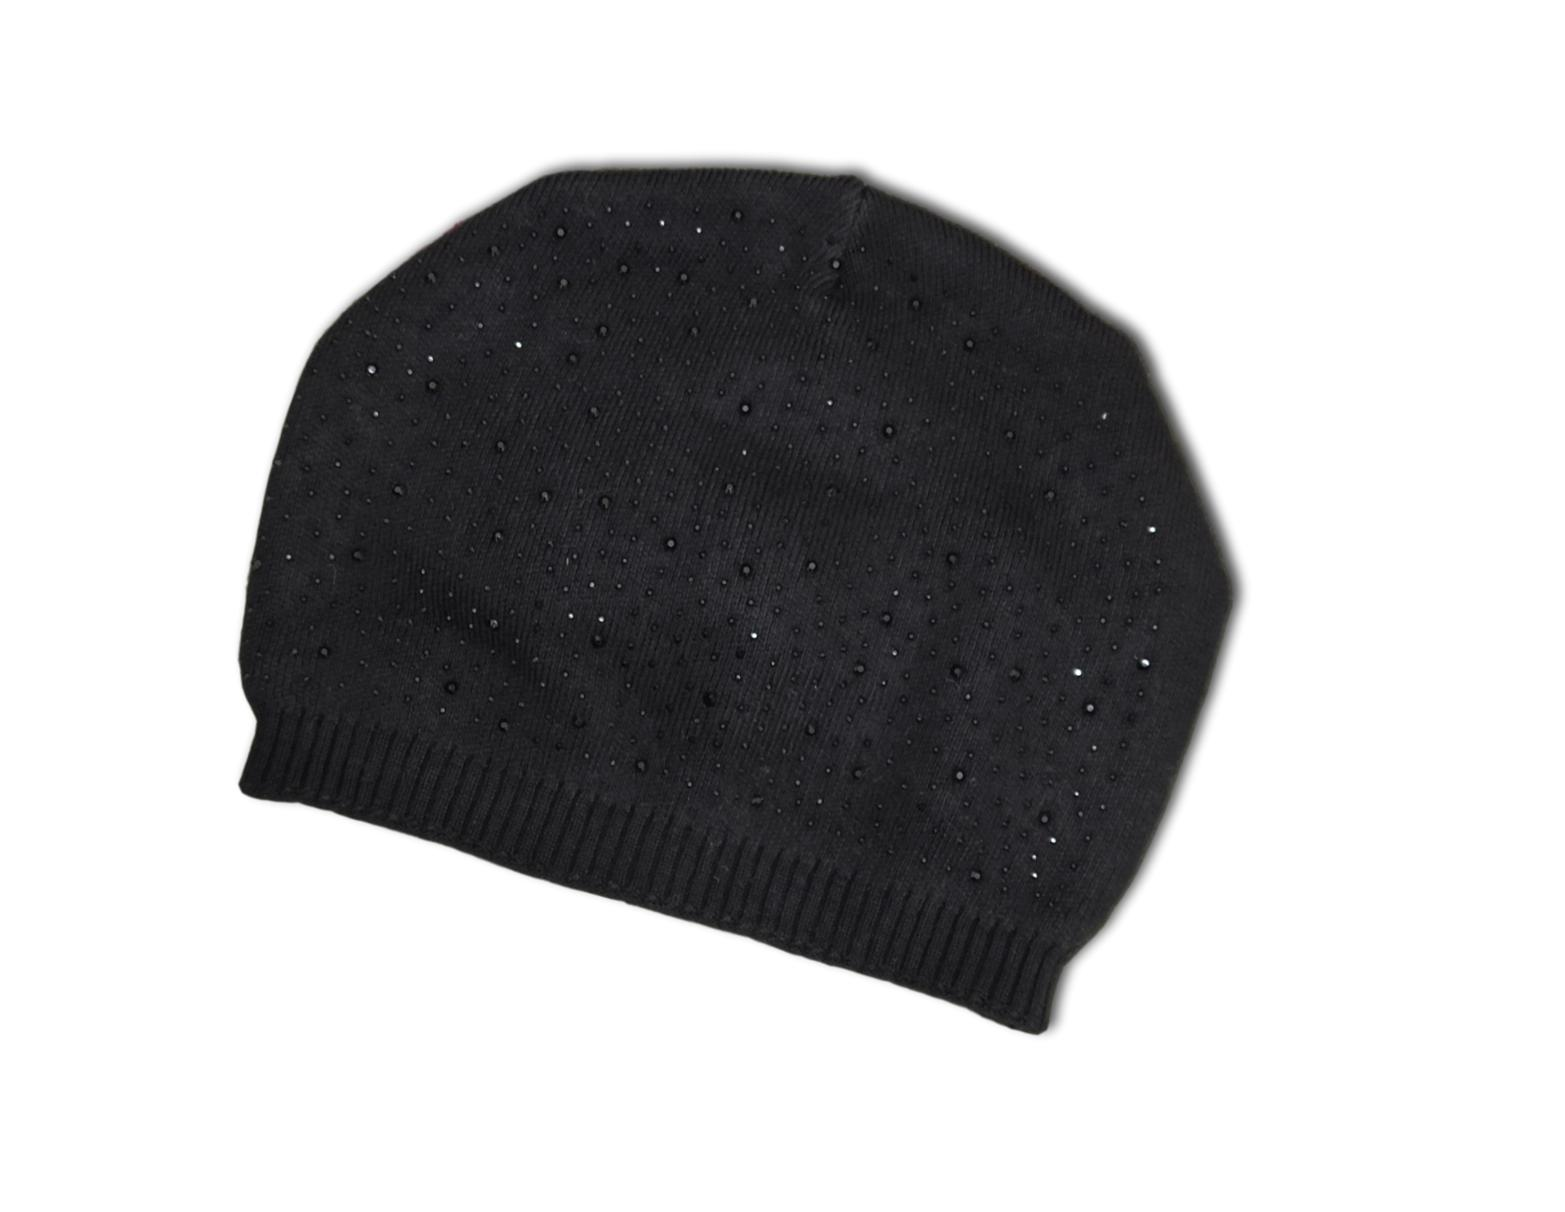 H1 Black Beanie Hat with sparkles.